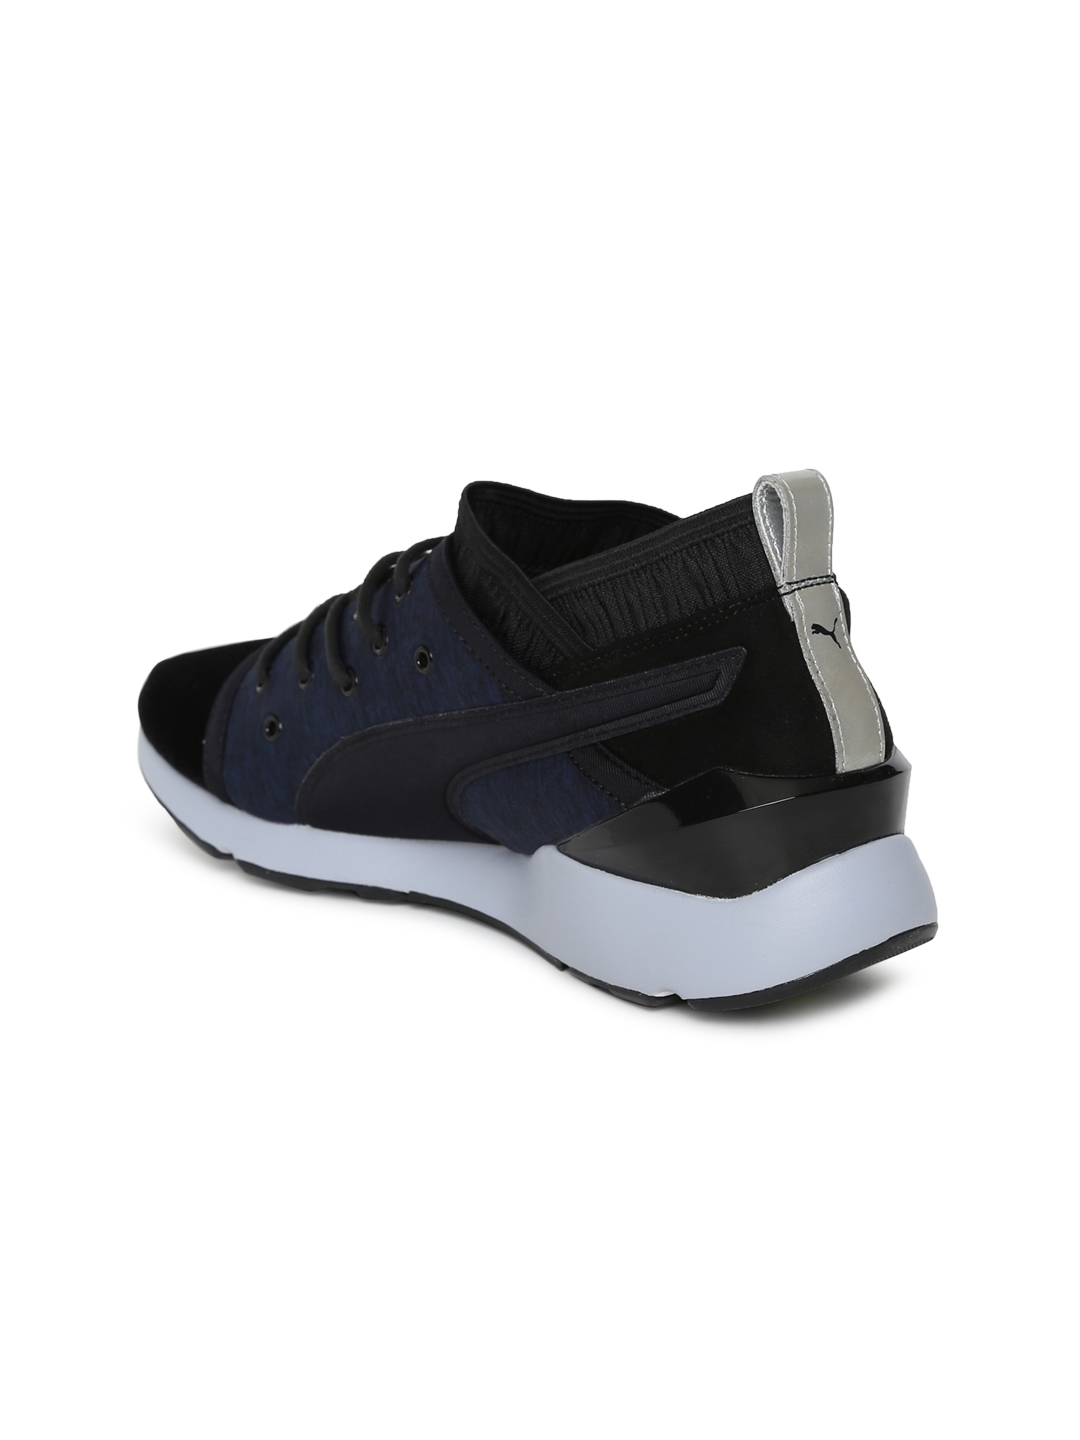 1e8f7bc23139 Buy Puma Women Blue   Black Pearl BL VR Sneakers - Casual Shoes for ...